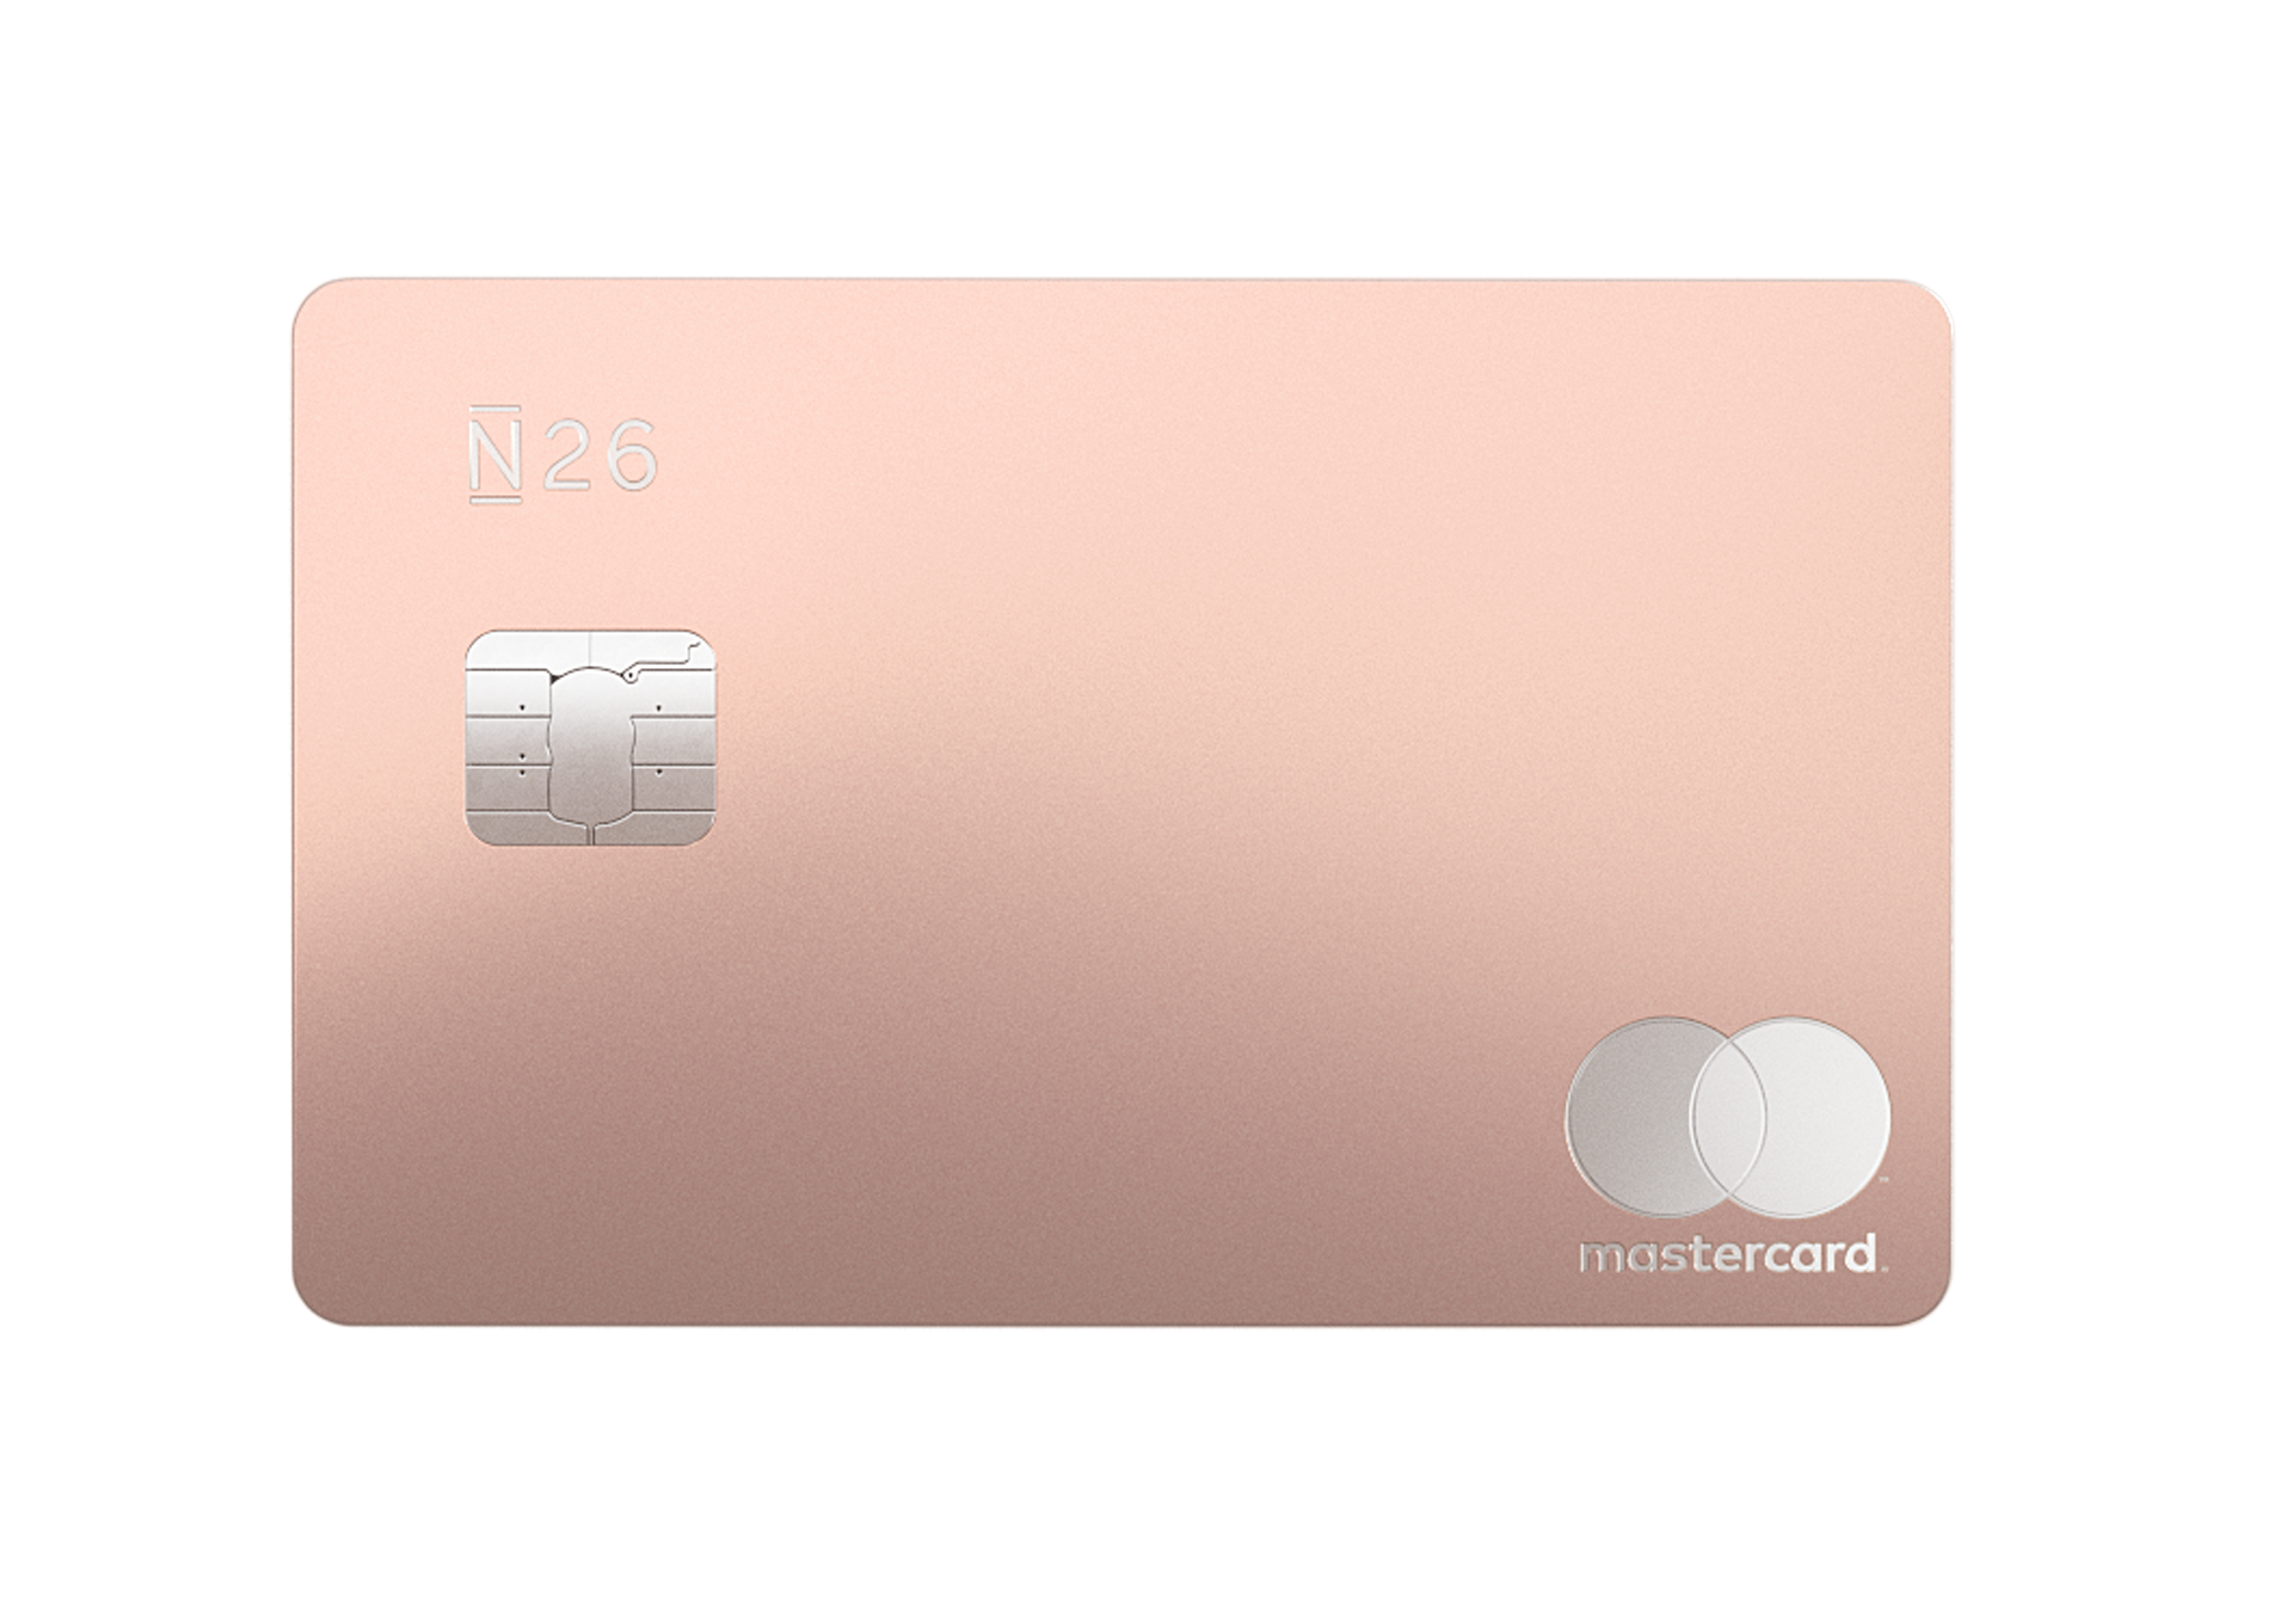 N26 Press Image of our Premium Metal Card in Coral Sand